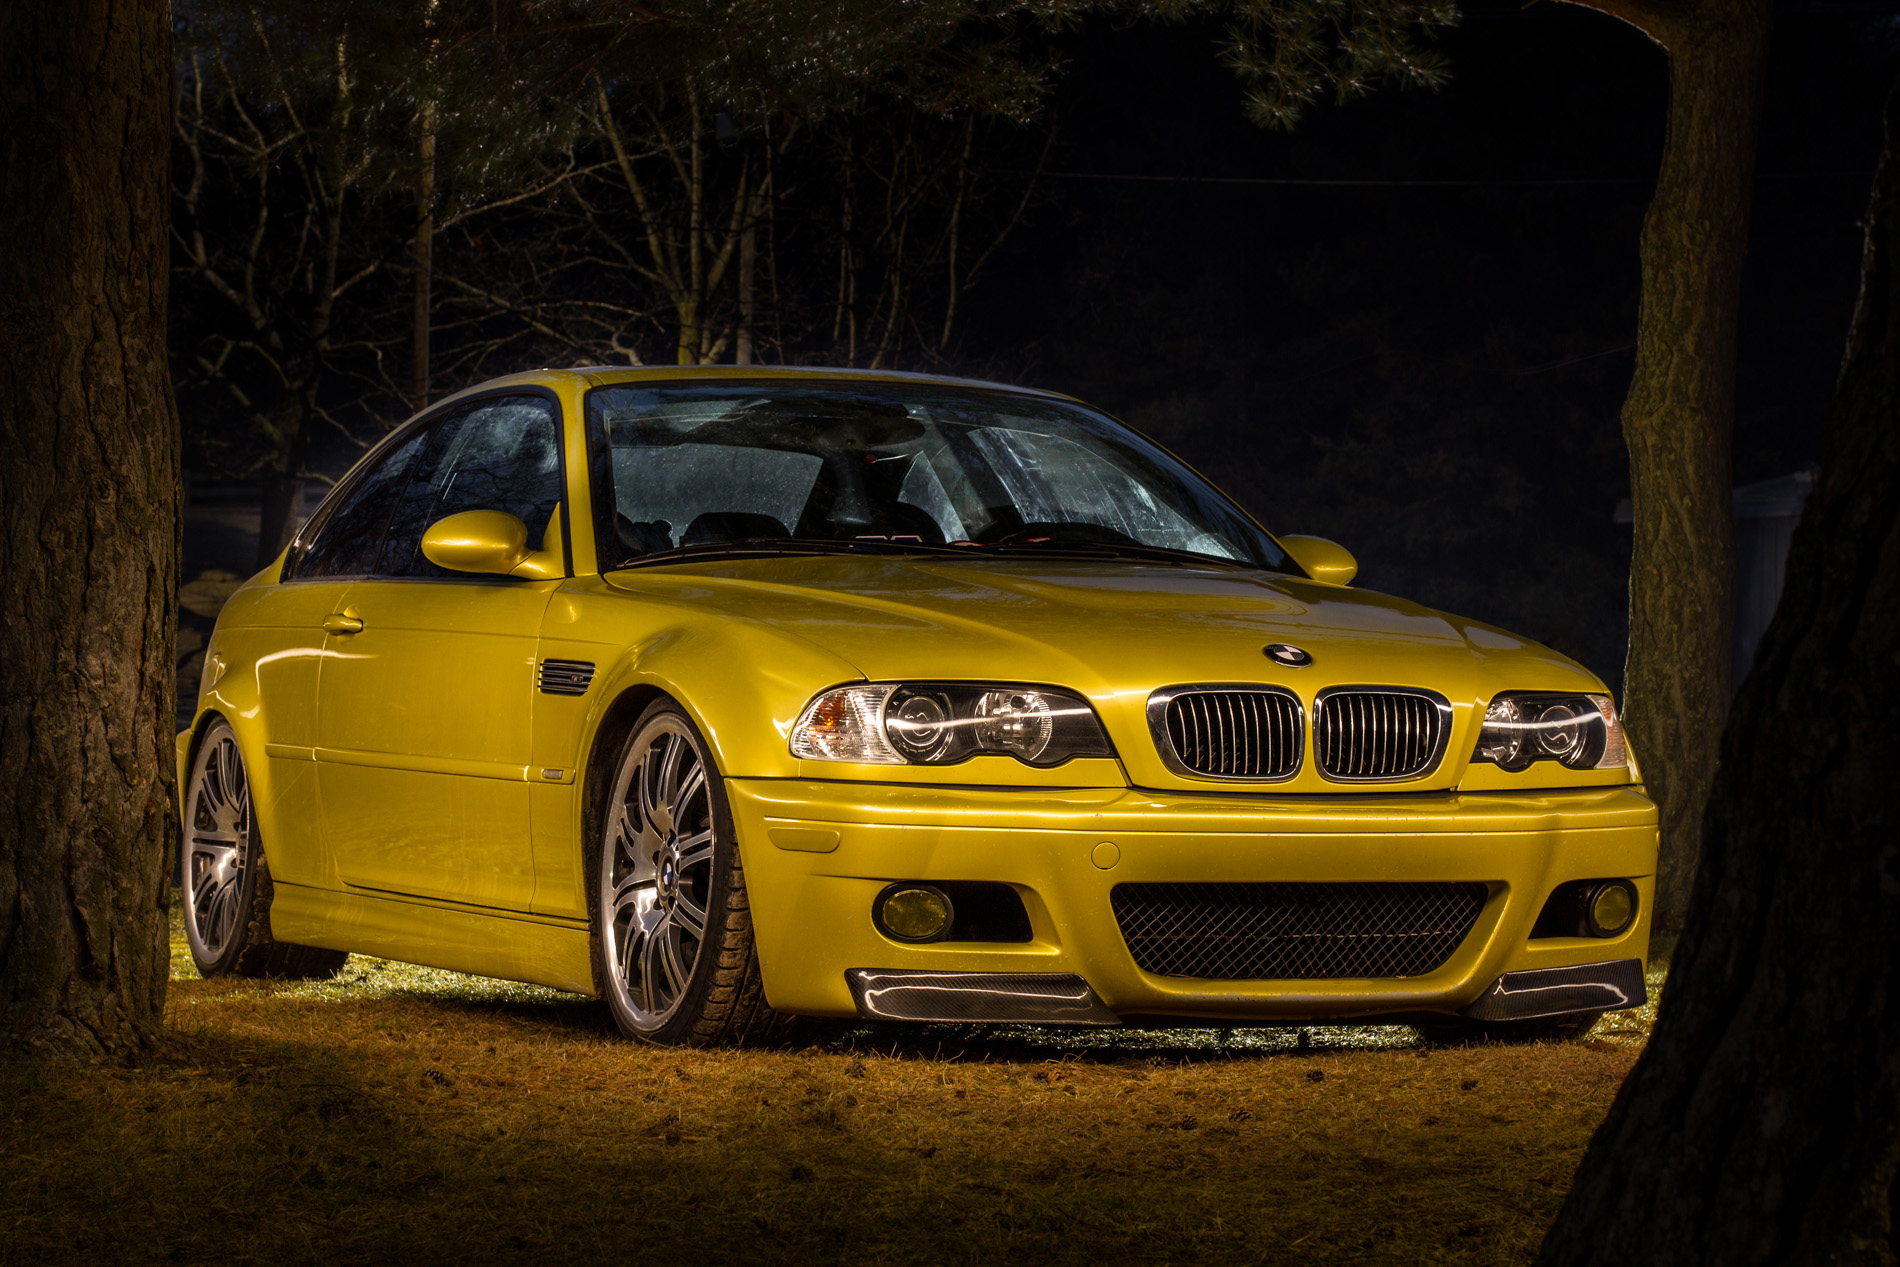 Light Painting a BMW